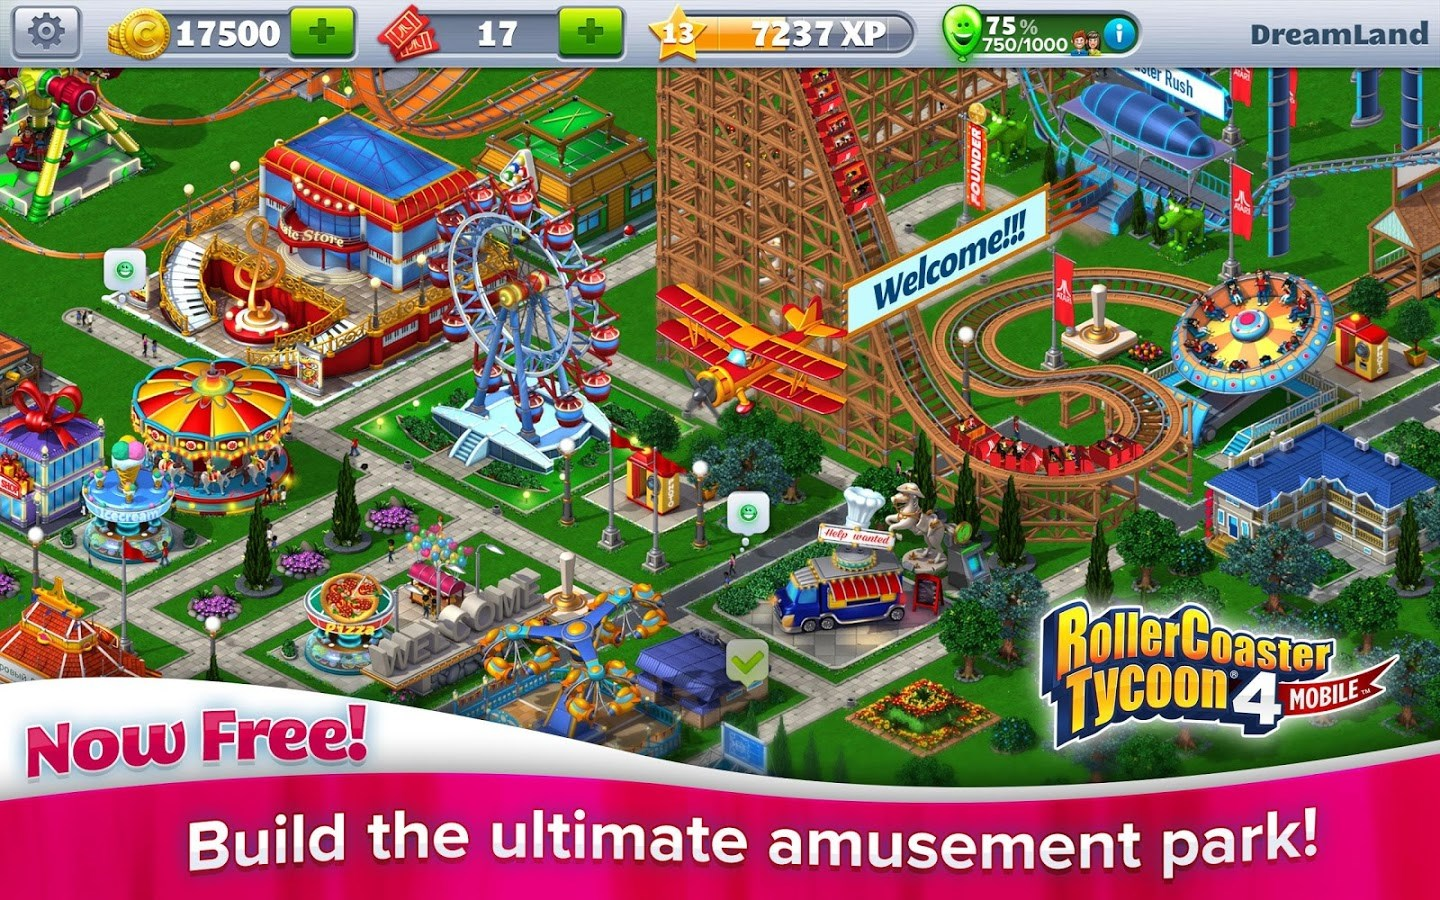 RollerCoaster Tycoon 4 Mobile - Imagem 1 do software